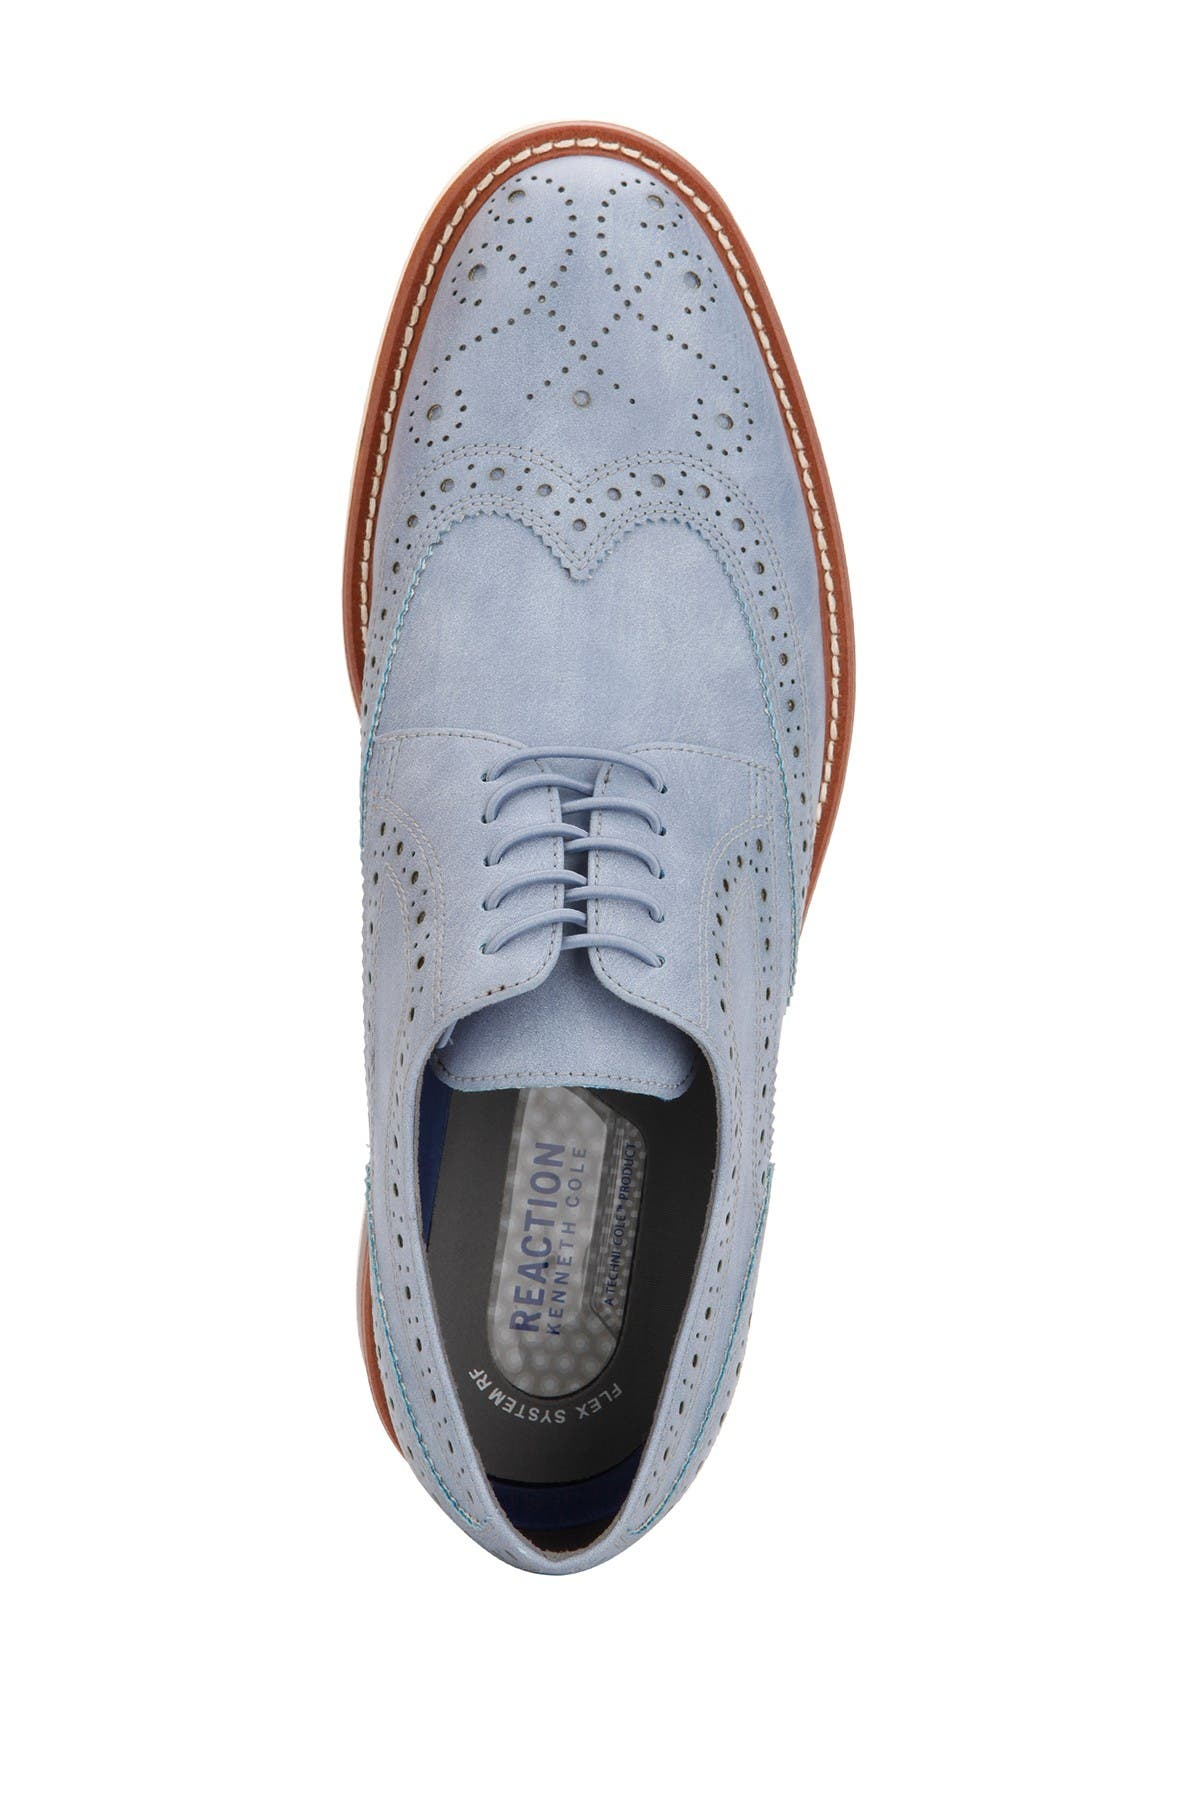 Kenneth Cole Klay Flex Lace-up Oxford In Light Blue